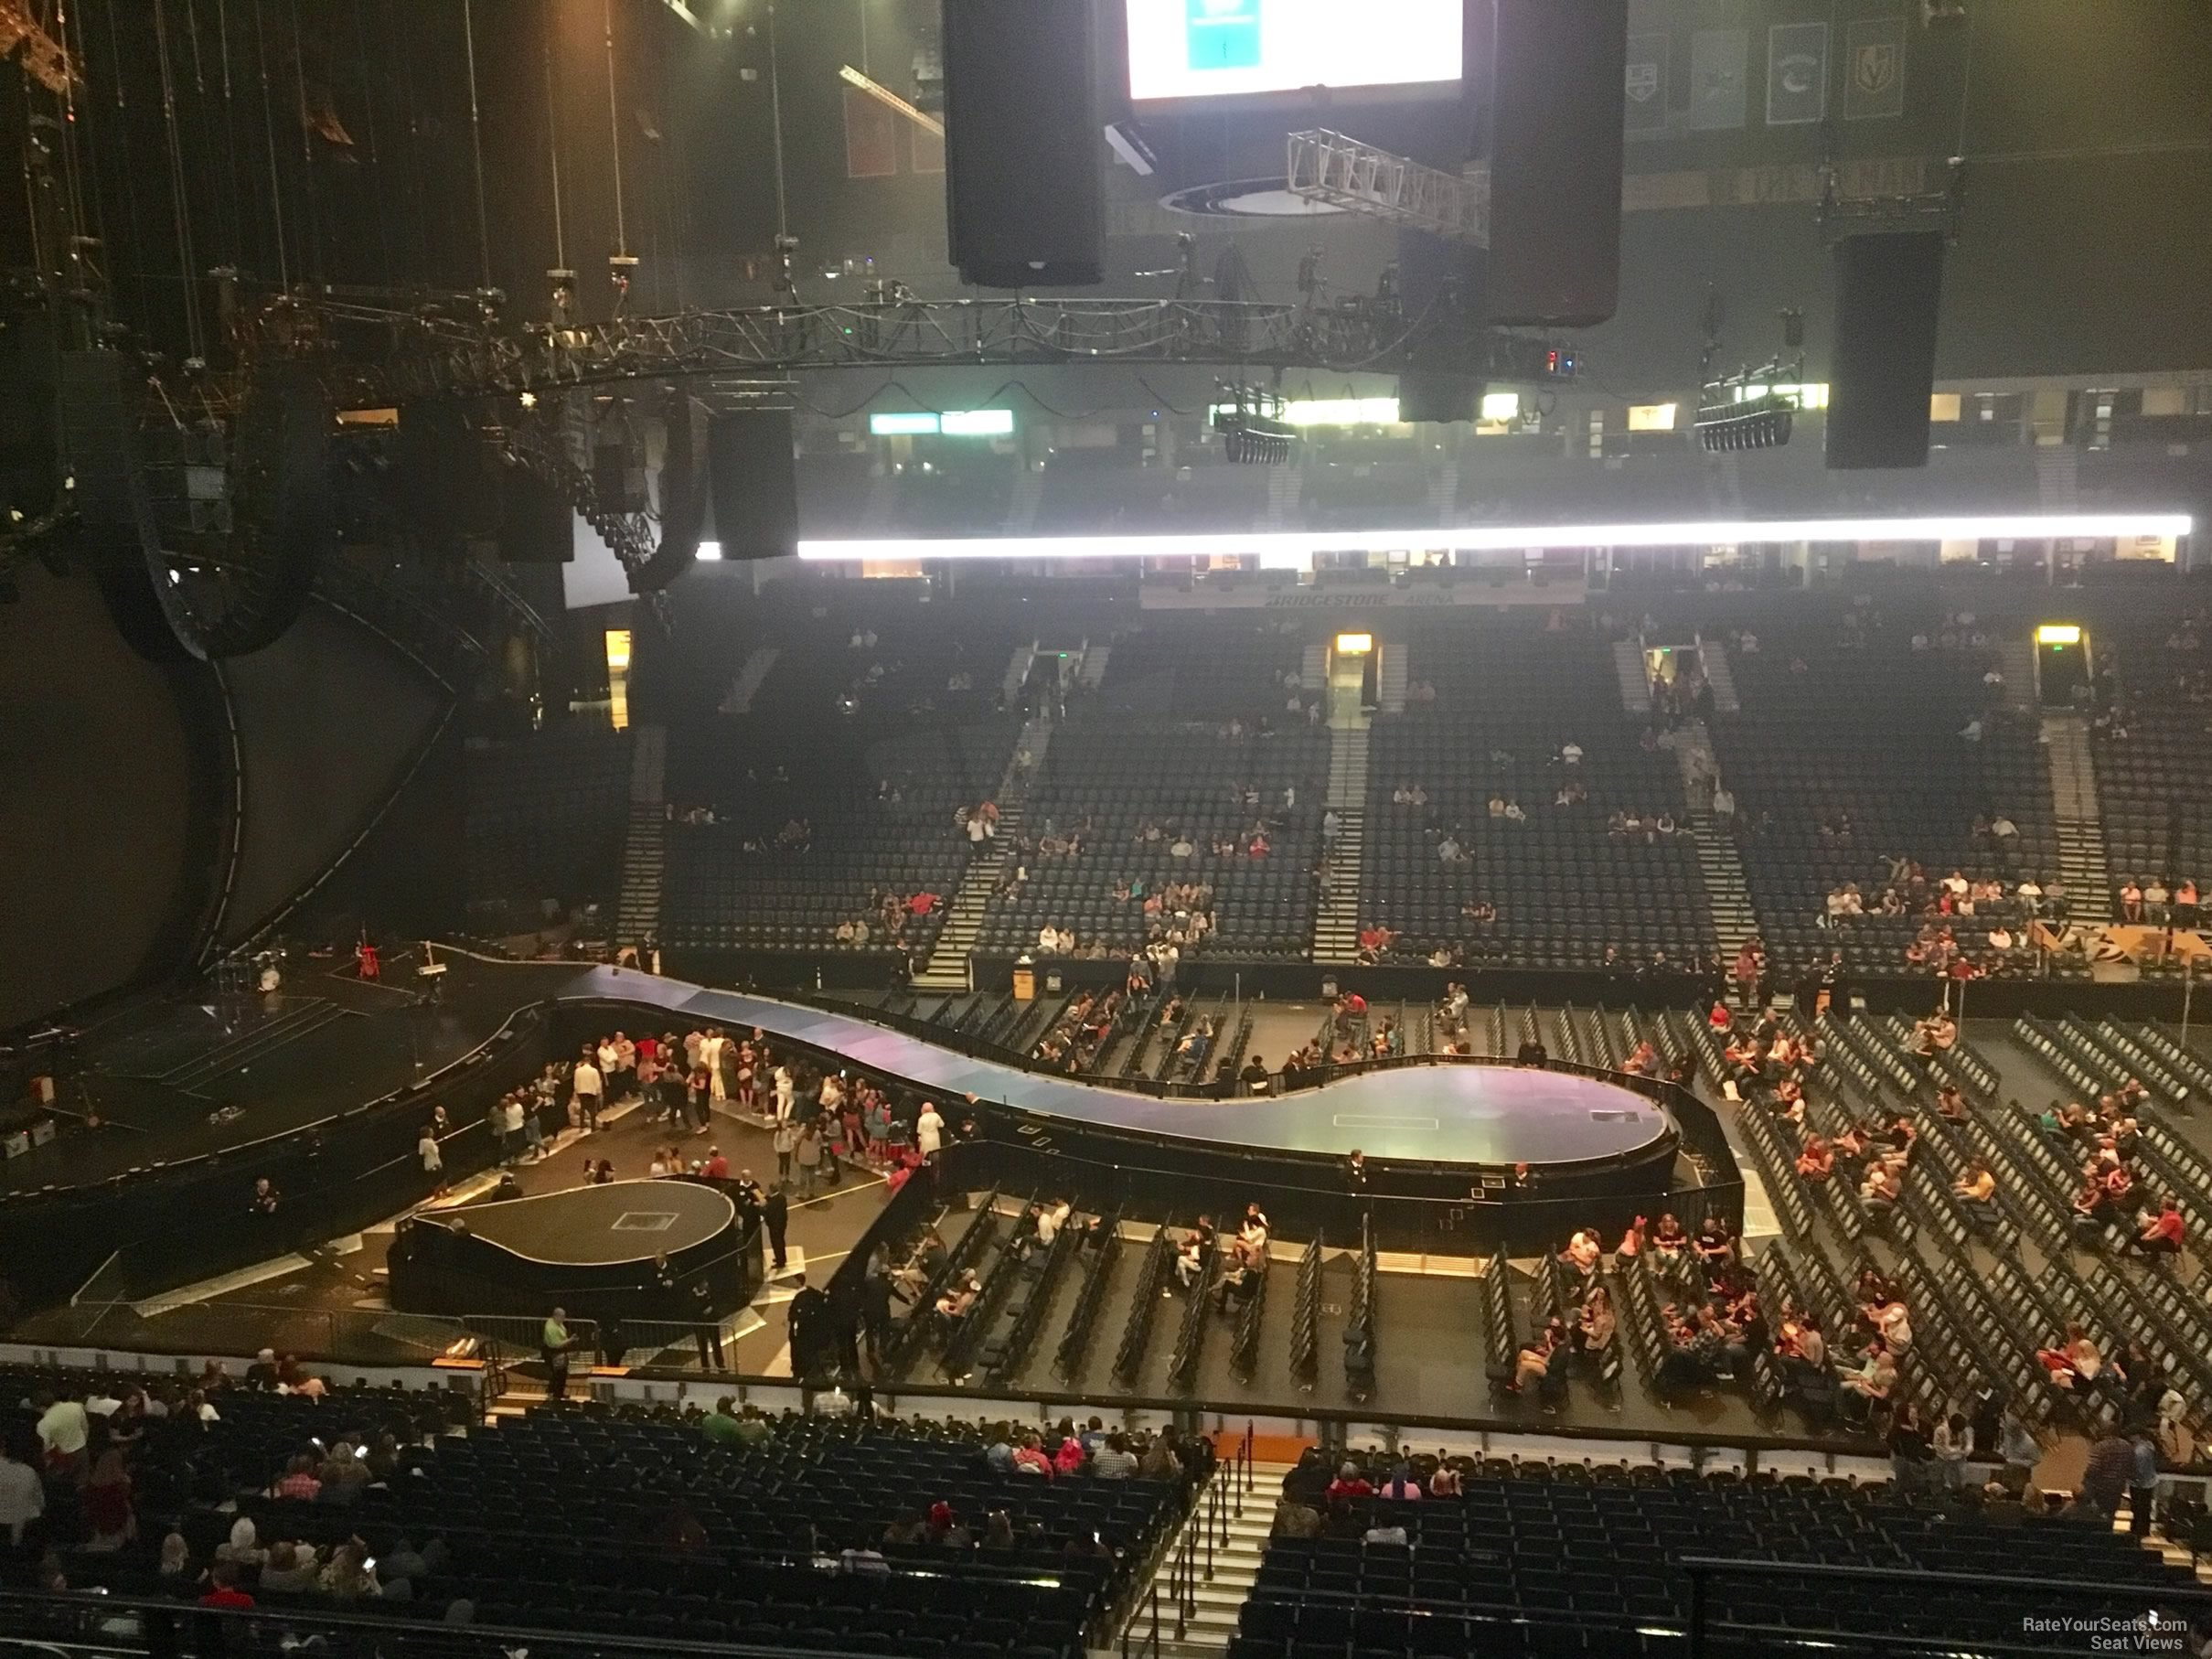 Bridgestone Arena - Nashville, TN - Event Tickets Center